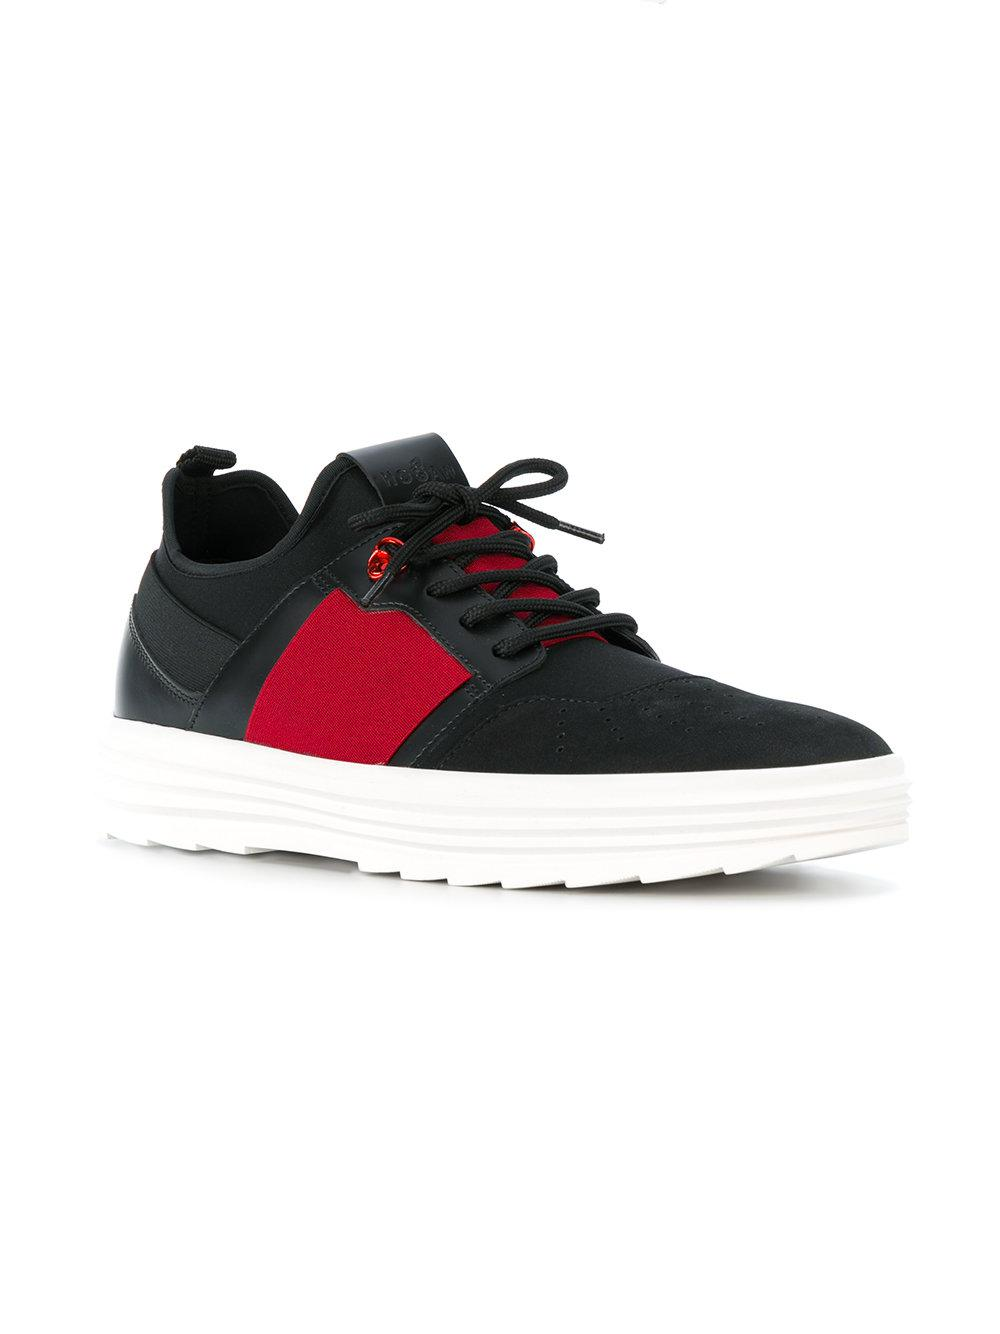 Hogan Leather H341 Helix Sneakers in Black for Men - Lyst